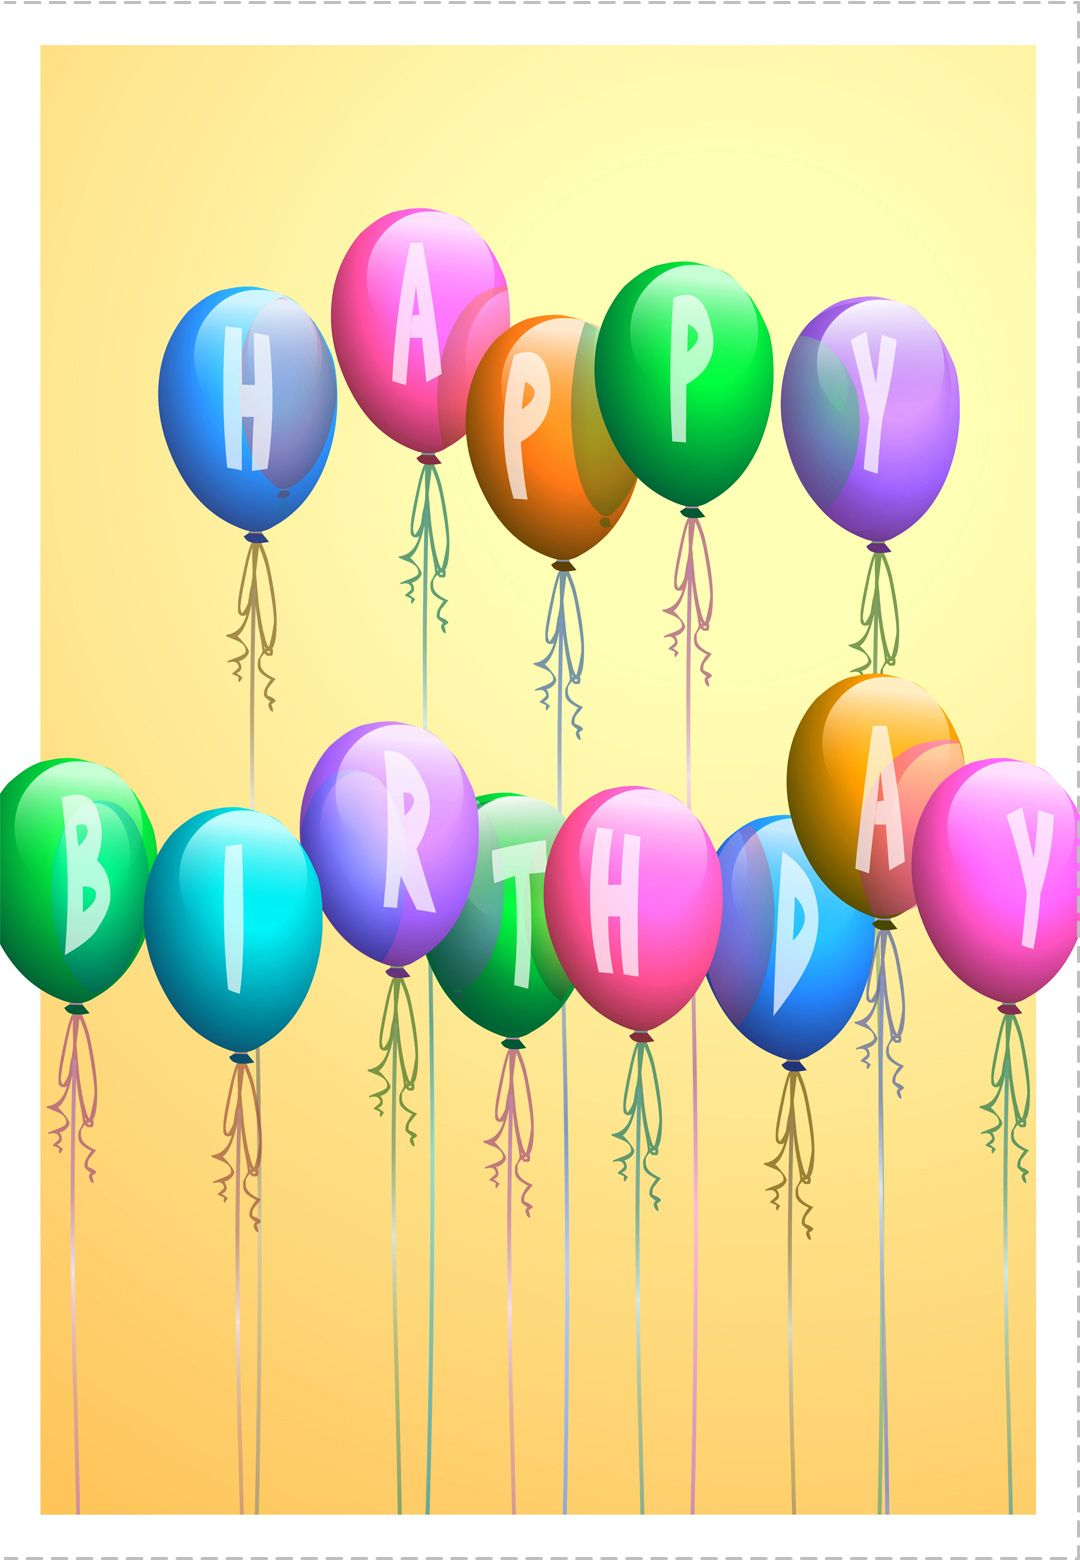 photograph relating to Free Printable Happy Birthday Signs referred to as Cost-free Printable Delighted Birthday Baloons Greeting Card